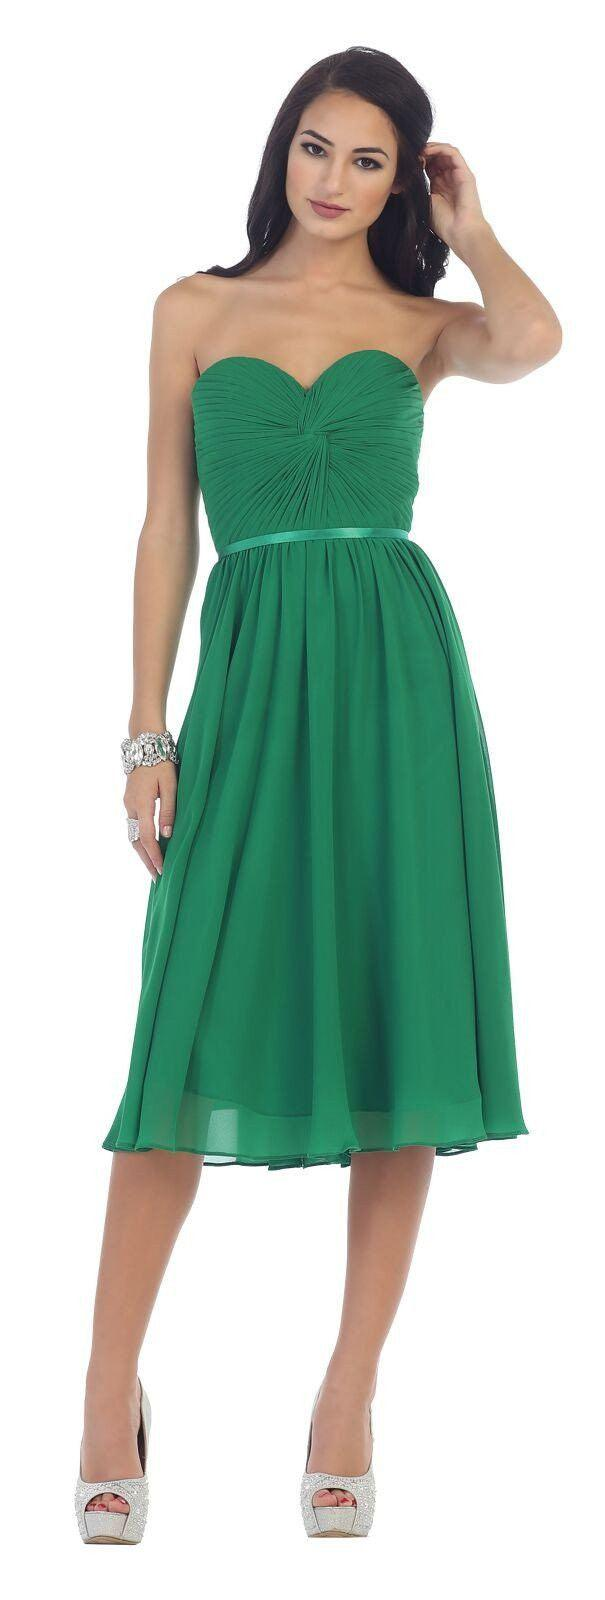 Short Prom Dress Plus Size Formal Cocktail - The Dress Outlet Emerald Green